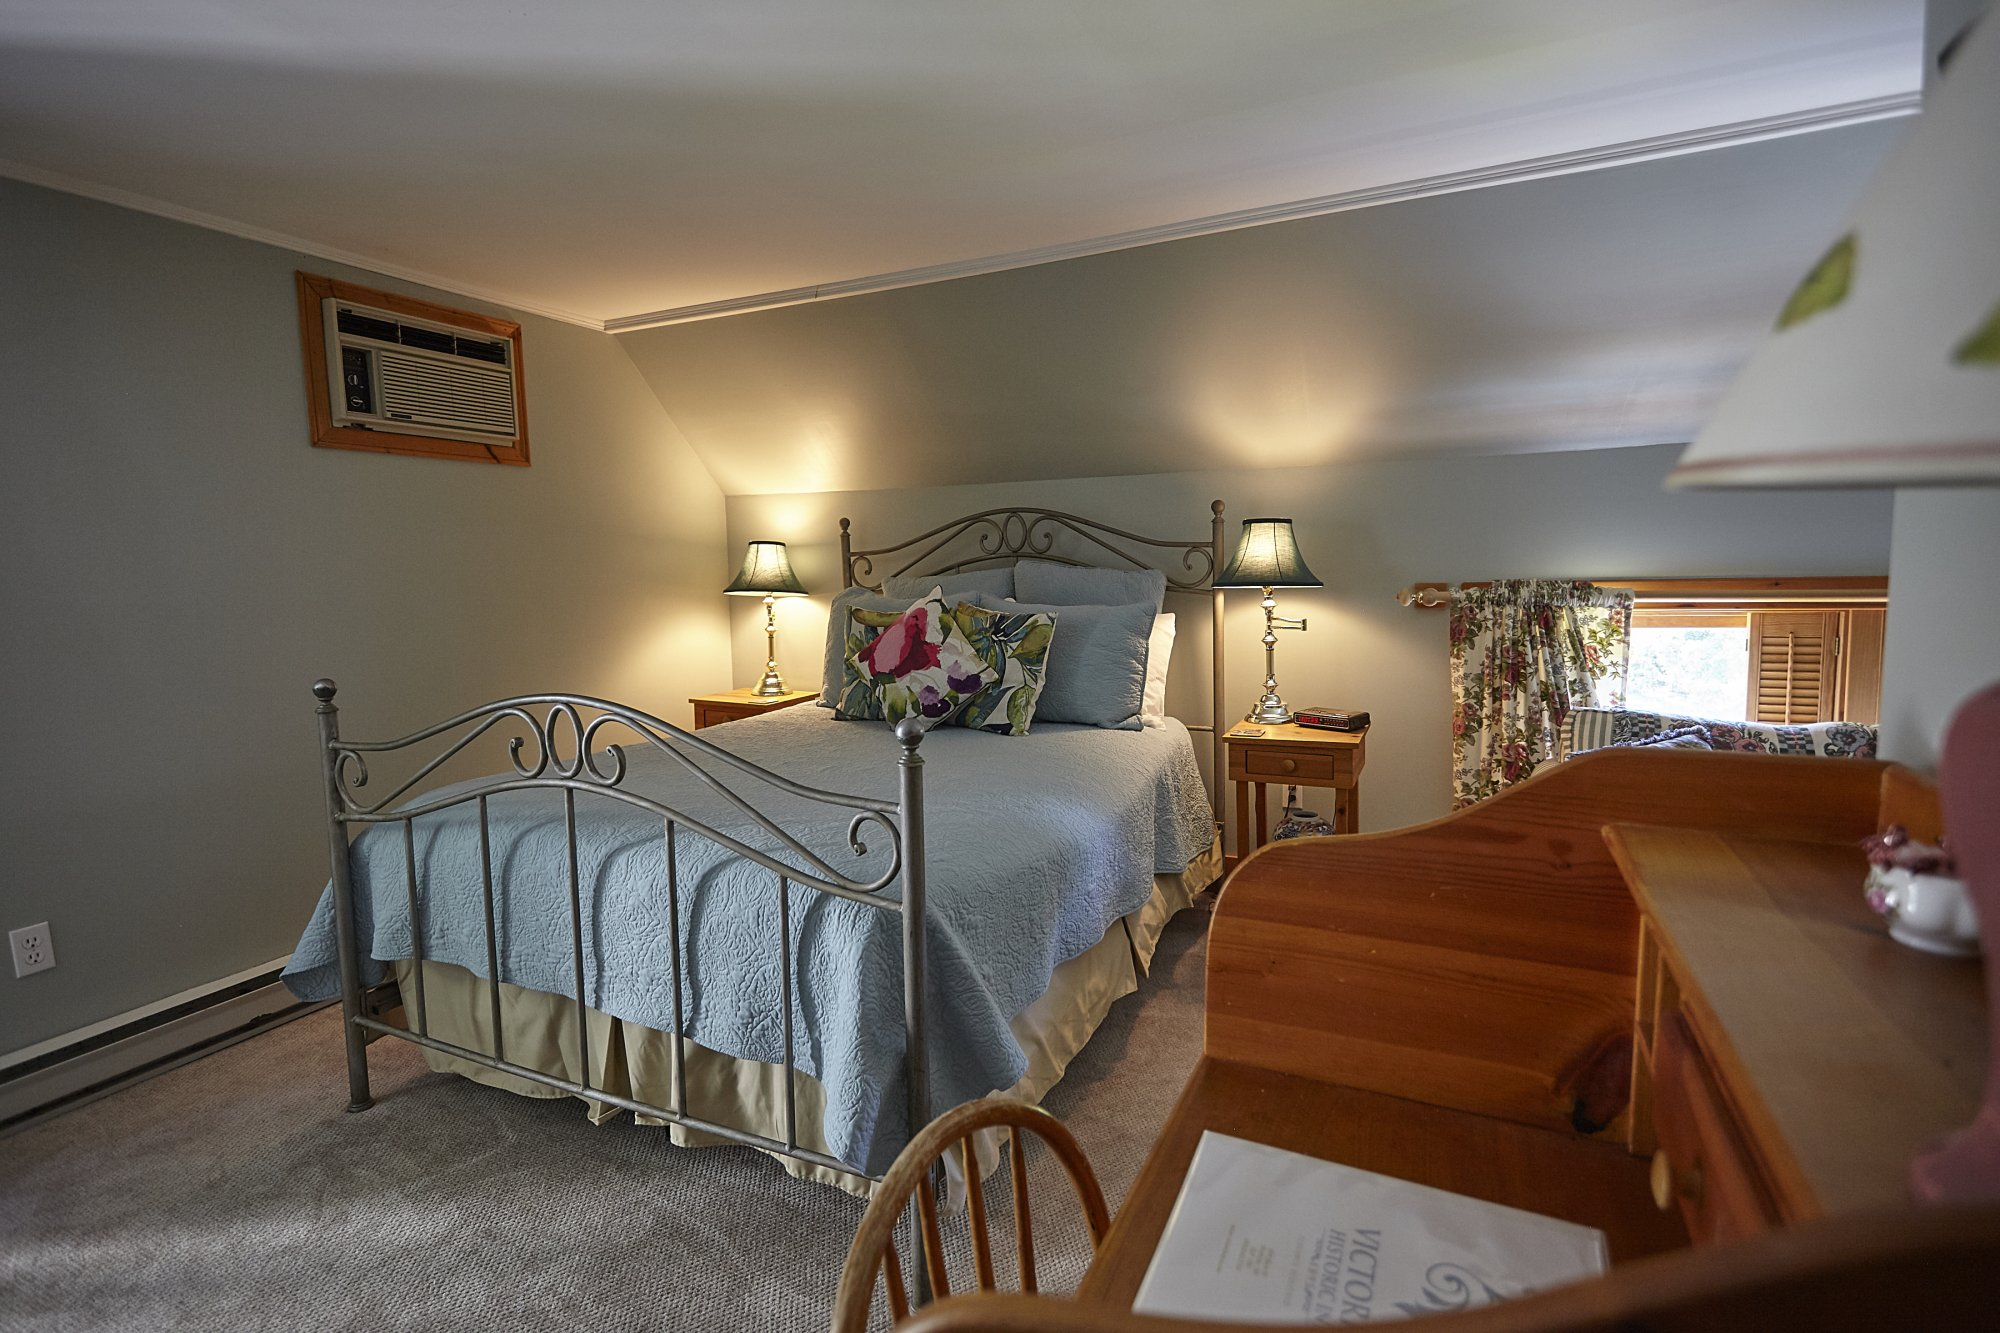 Carriage House Rooms - Wolfville, NS Bed & Breakfast | Victoria\'s ...